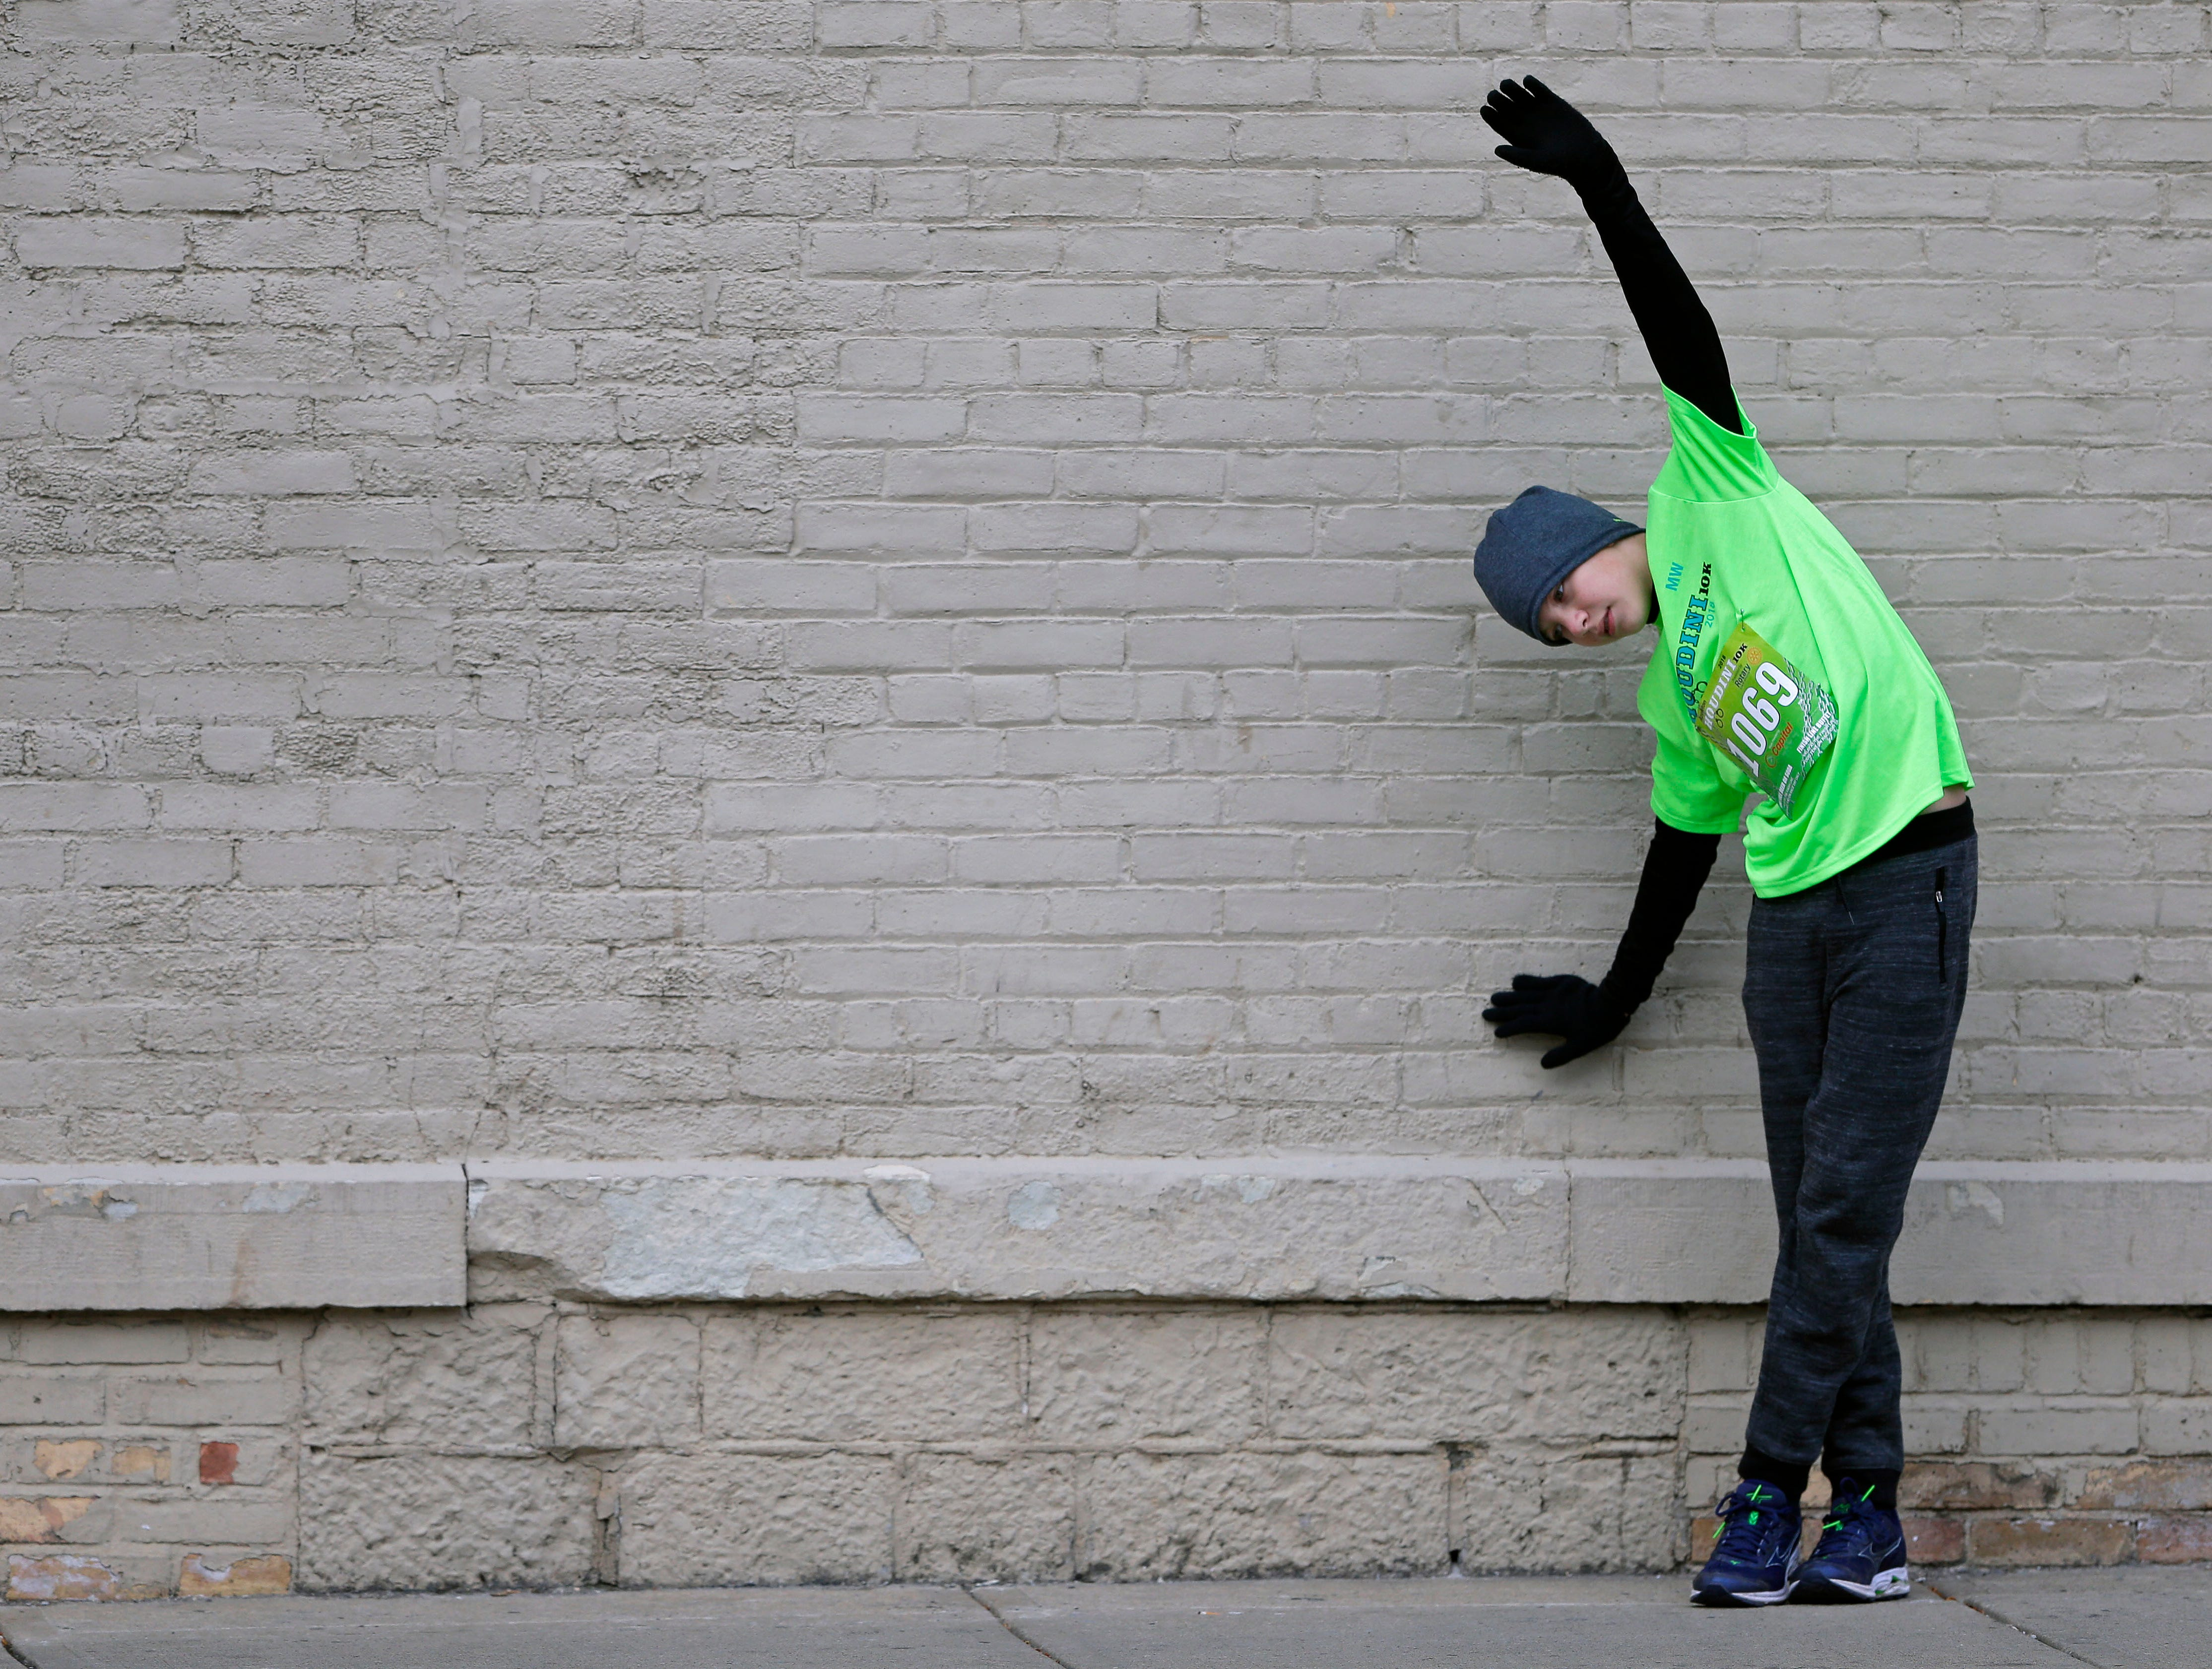 Simon Gavin stretches before the start of the 4th annual Appleton Houdini 10K Saturday, November 3, 2018, in Appleton, Wis.Ron Page/USA TODAY NETWORK-Wisconsin